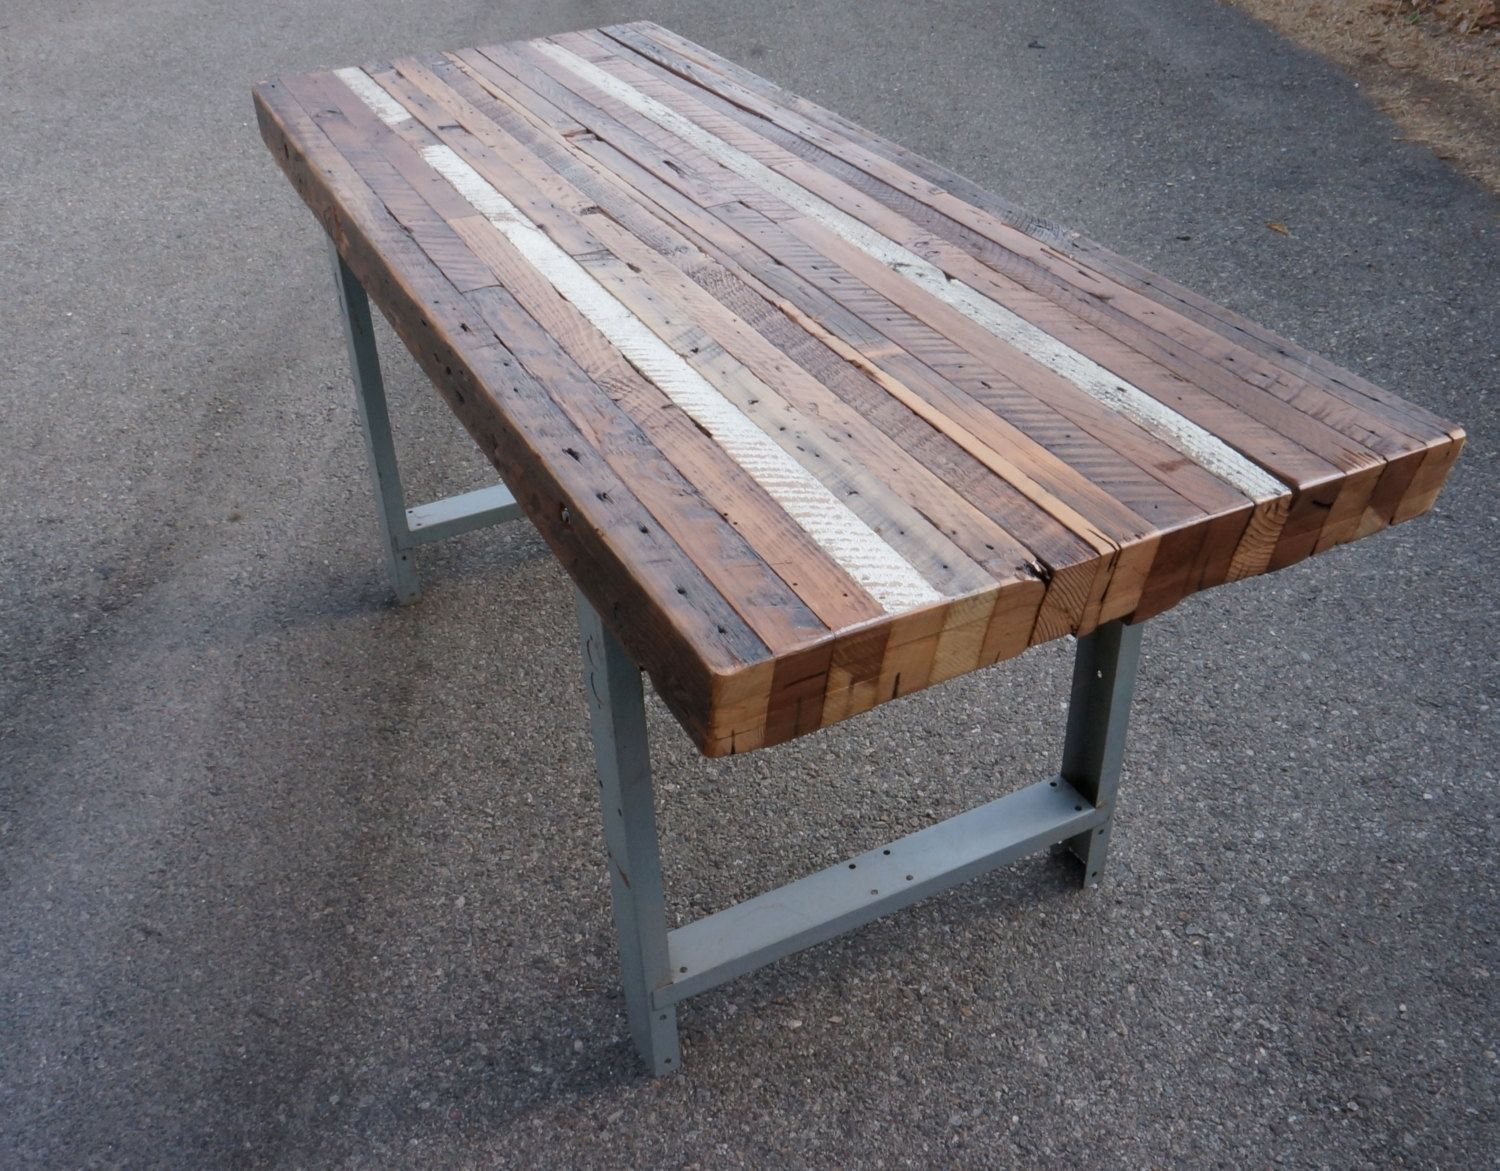 Handmade custom outdoor indoor rustic industrial for Reclaimed wood table designs